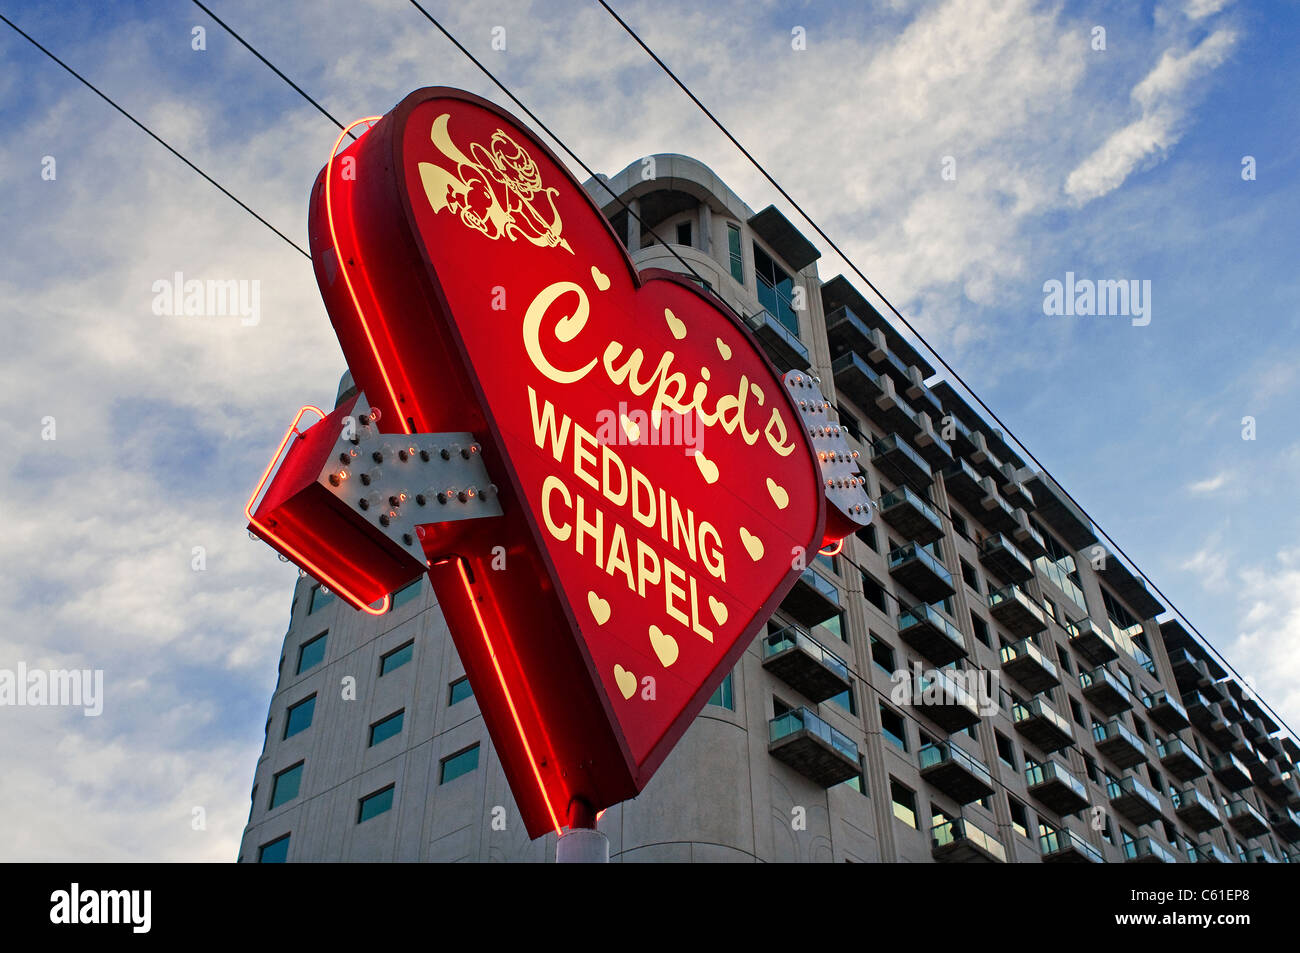 Wedding Chapel Cupids Las Vegas NV Nevada - Stock Image